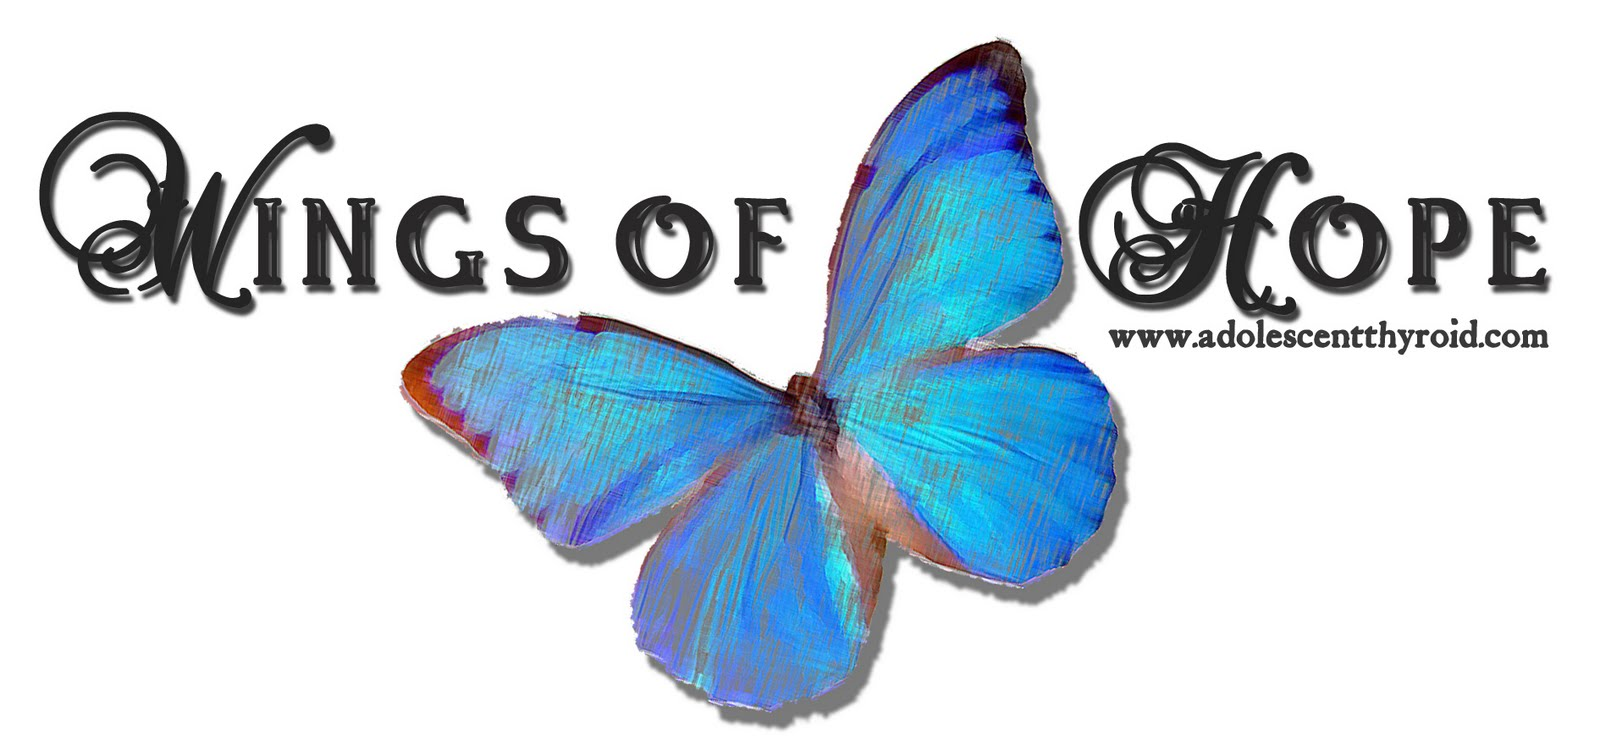 Wings of Hope for Adolescent Thyroid Awareness, Inc.